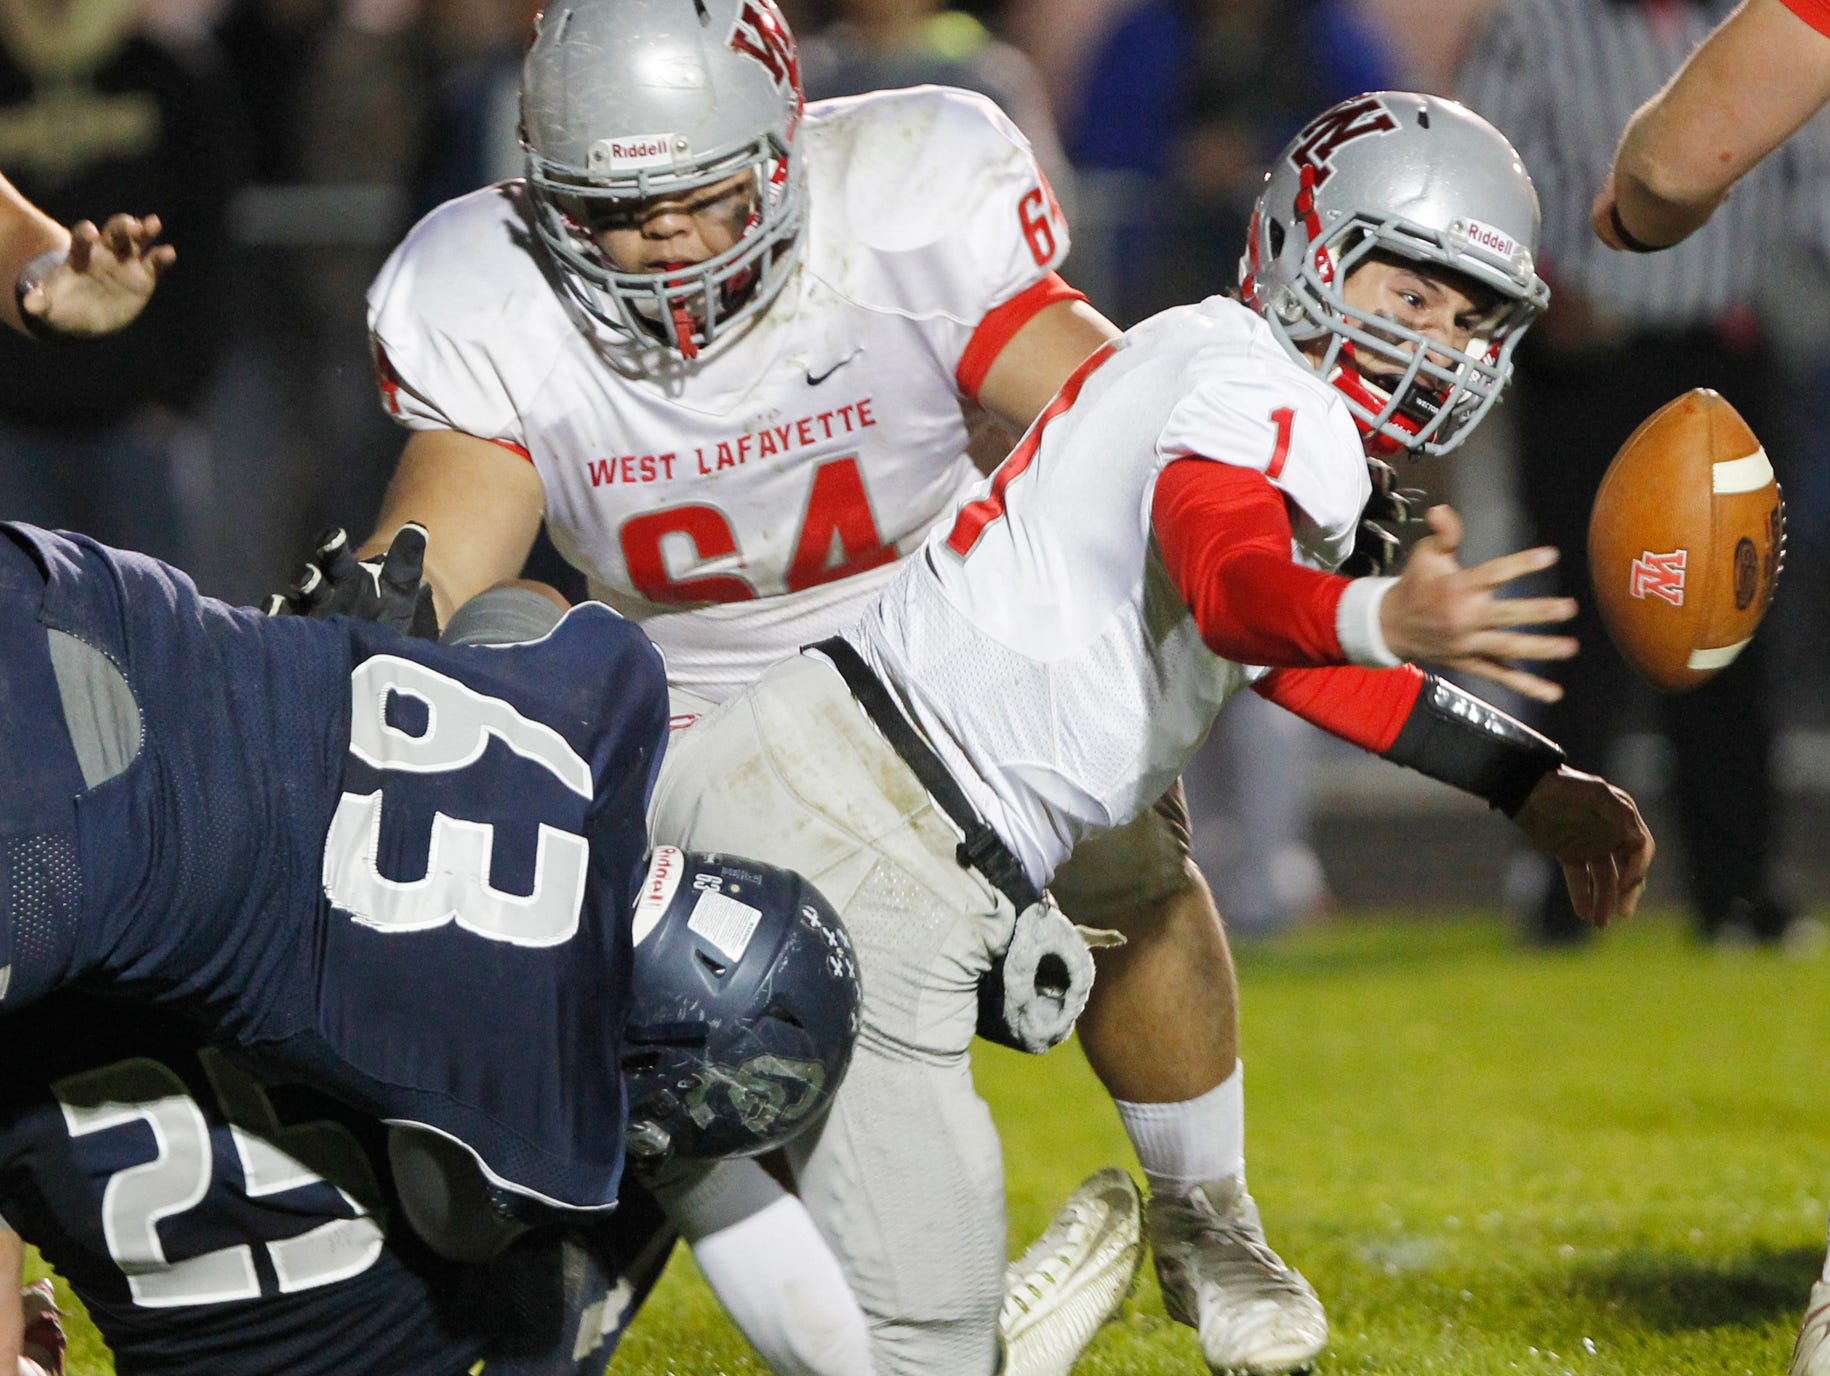 West Lafayette's Mikey Kidwell fumbles the ball as he is hit by Central Catholic's Rizlyon Baguisa with 9:49 remaining. CC beat their conference rival 38-20.